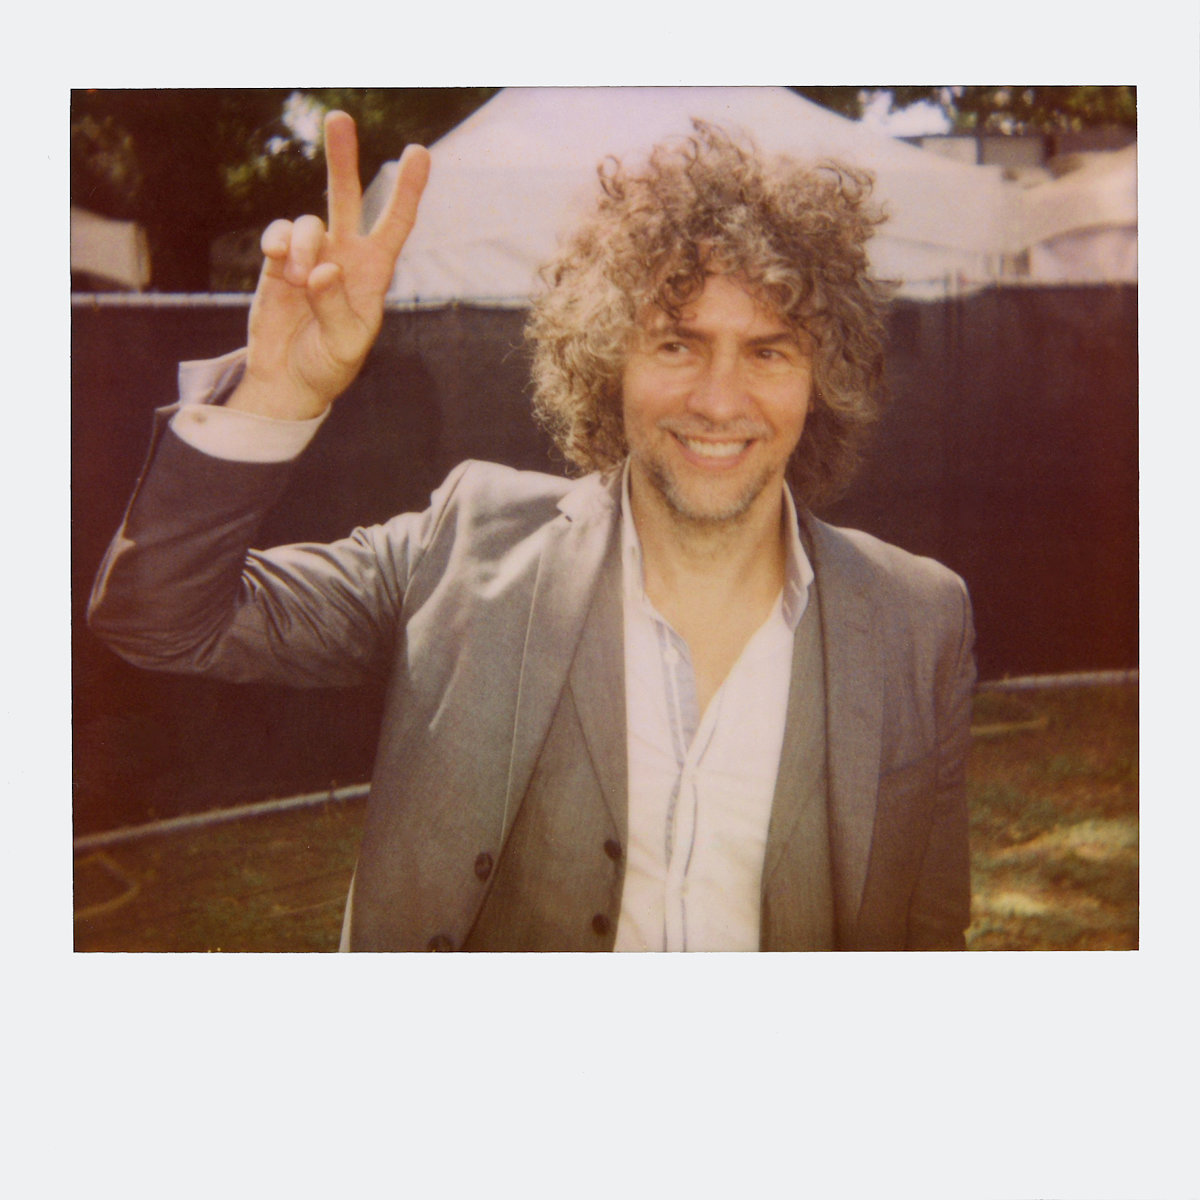 Wayne Coyne // The Flaming Lips